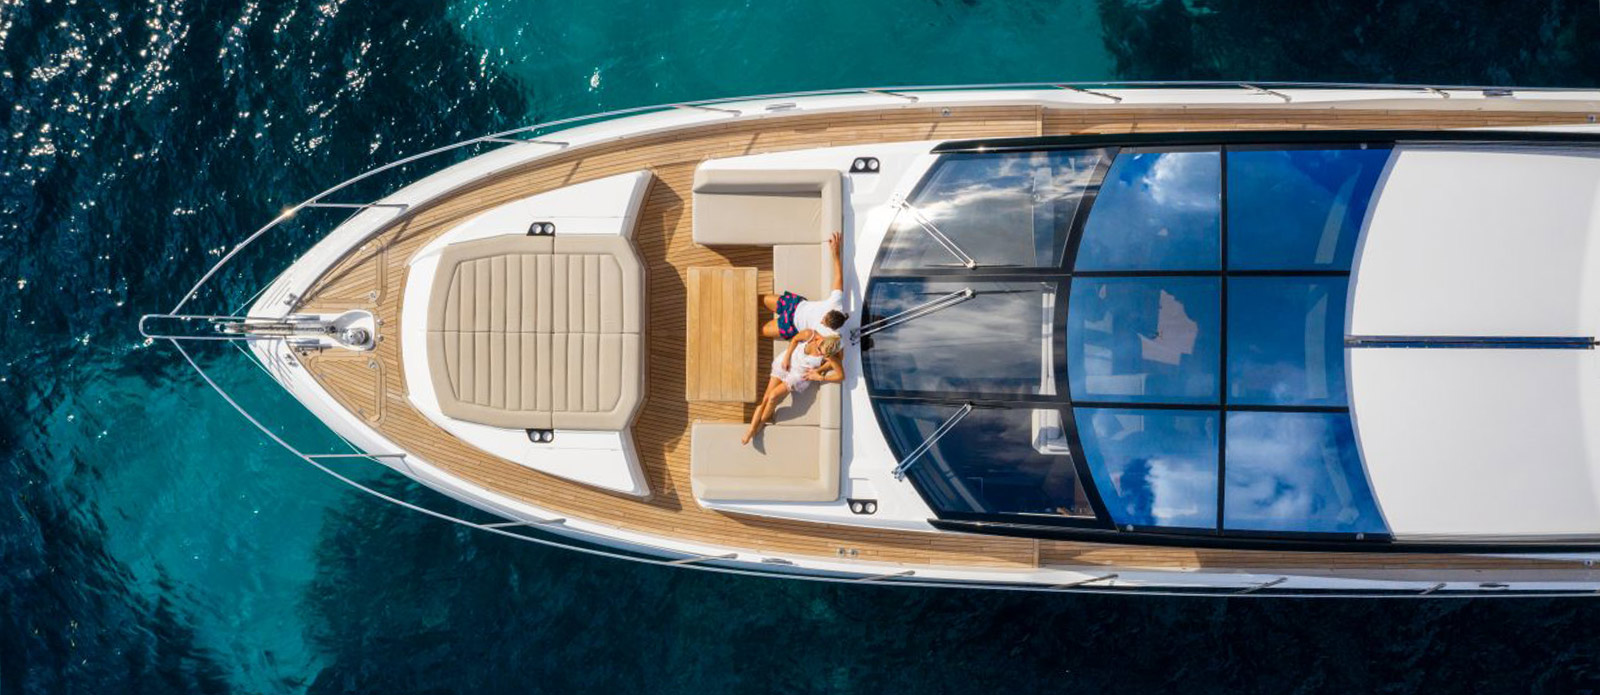 Sunseeker 74 Predator - Overhead-Close